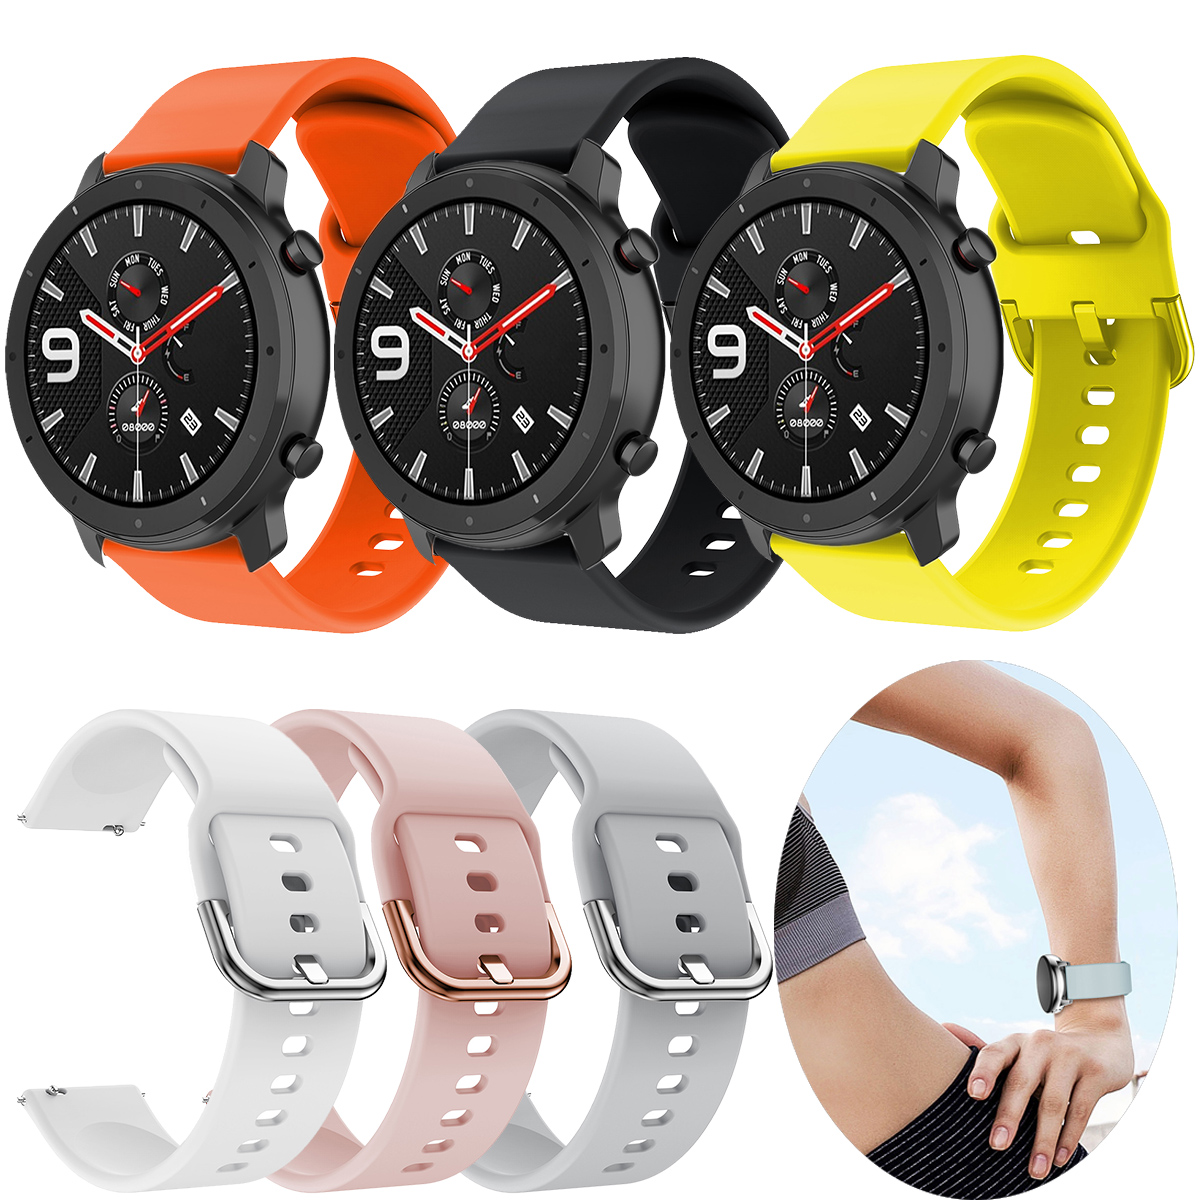 20 22mm Silicone Replacement <font><b>Watch</b></font> Strap For Xiaomi Huami Amazfit GTR/Bip/GTS/Stratos 3/<font><b>Huawei</b></font> <font><b>GT</b></font> <font><b>Watch</b></font> <font><b>2</b></font> Smart Accessories image